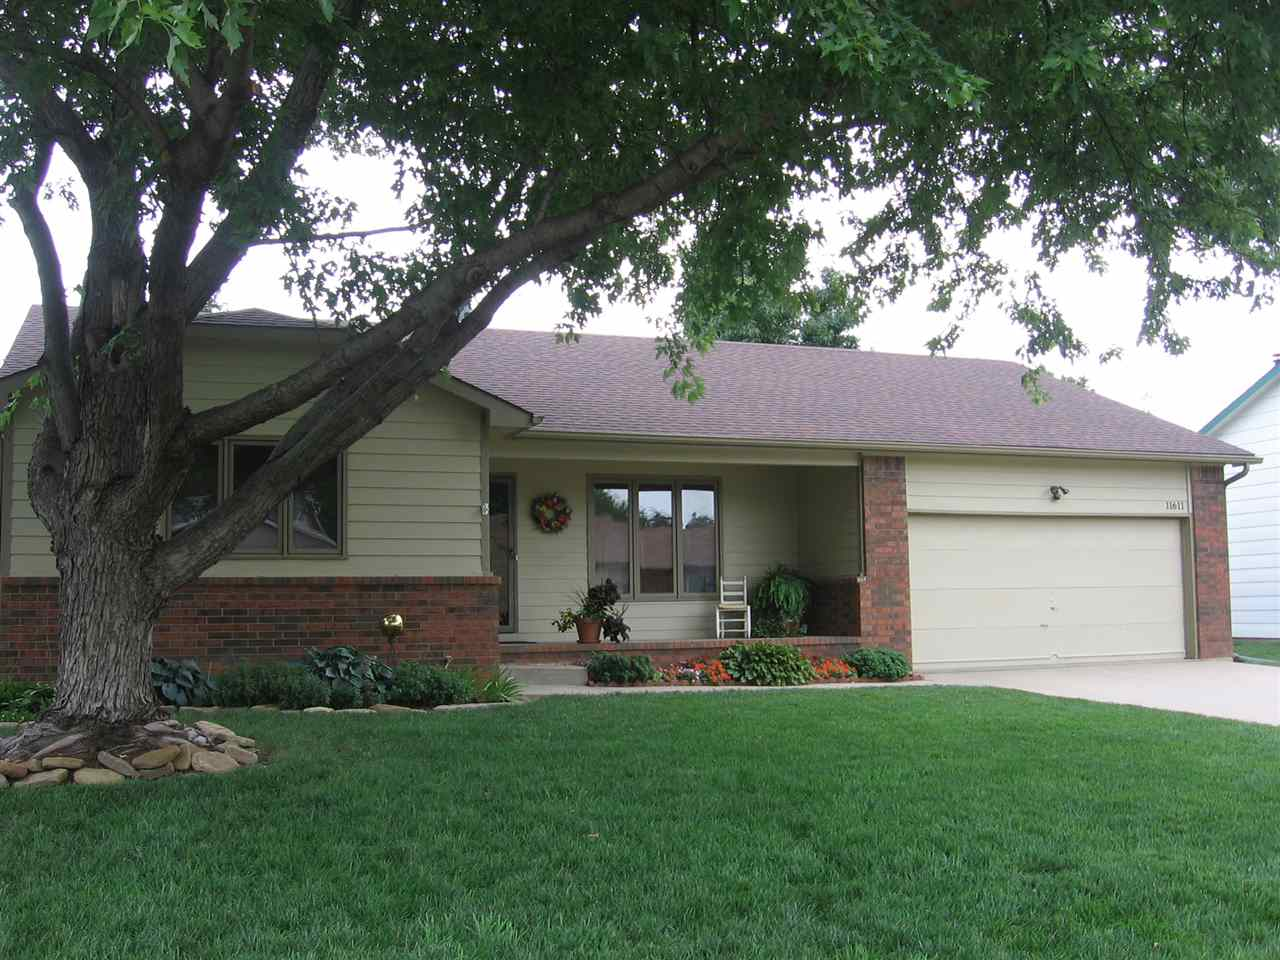 11611 W Cindy, Wichita, KS 67212